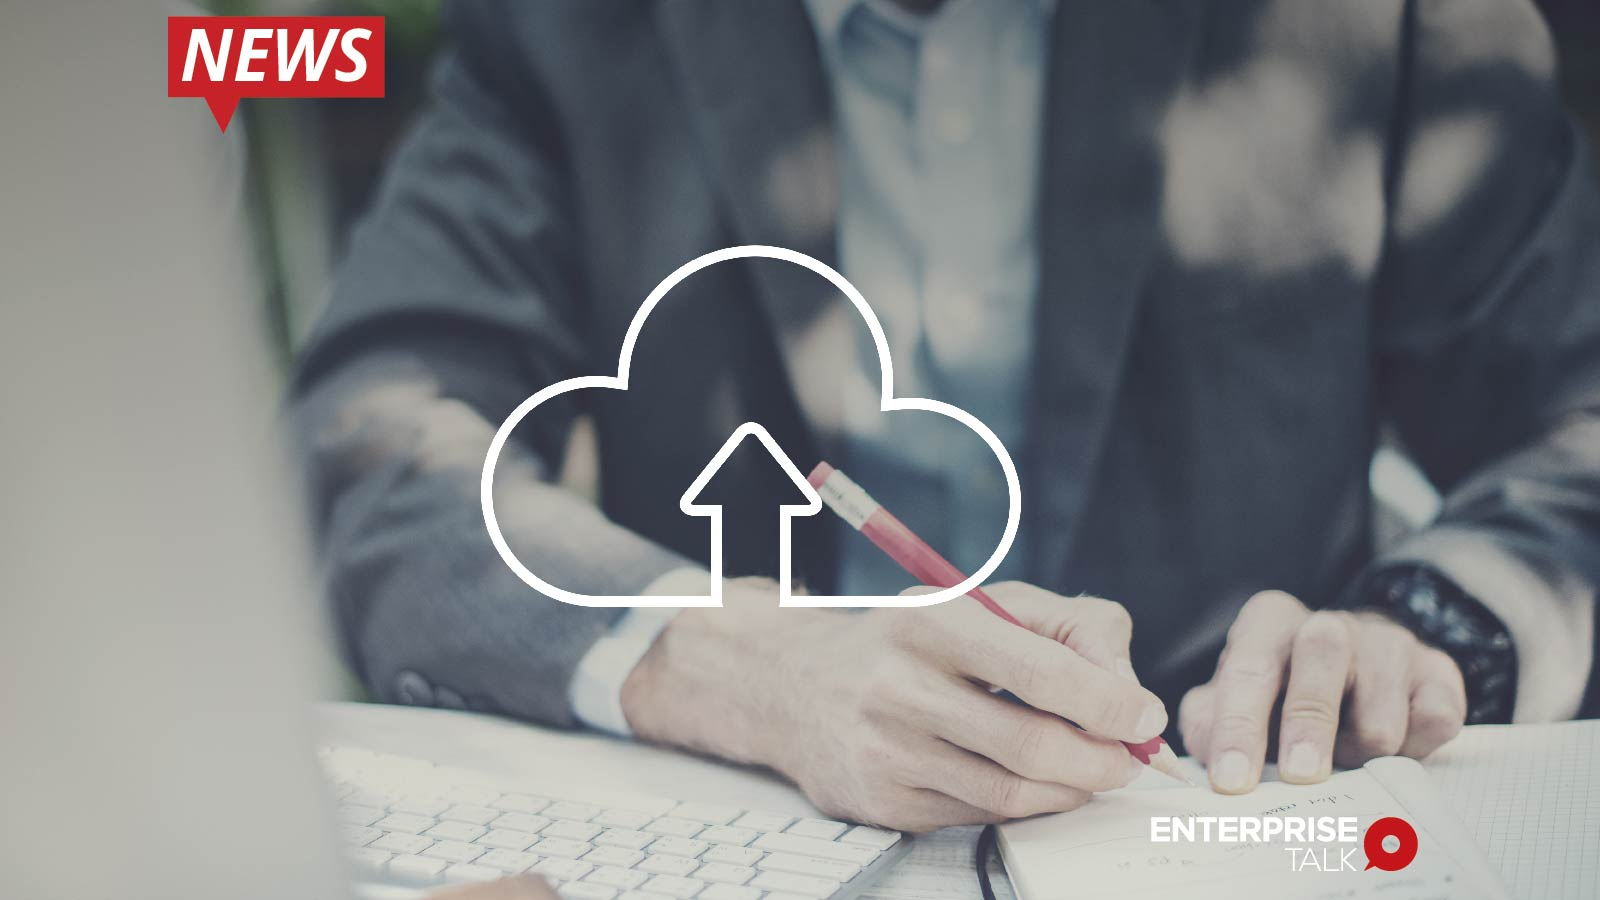 Up and Running Software Brings Cloud Computing Expertise and Custom Software Development Skills Together To Drive Business Agility